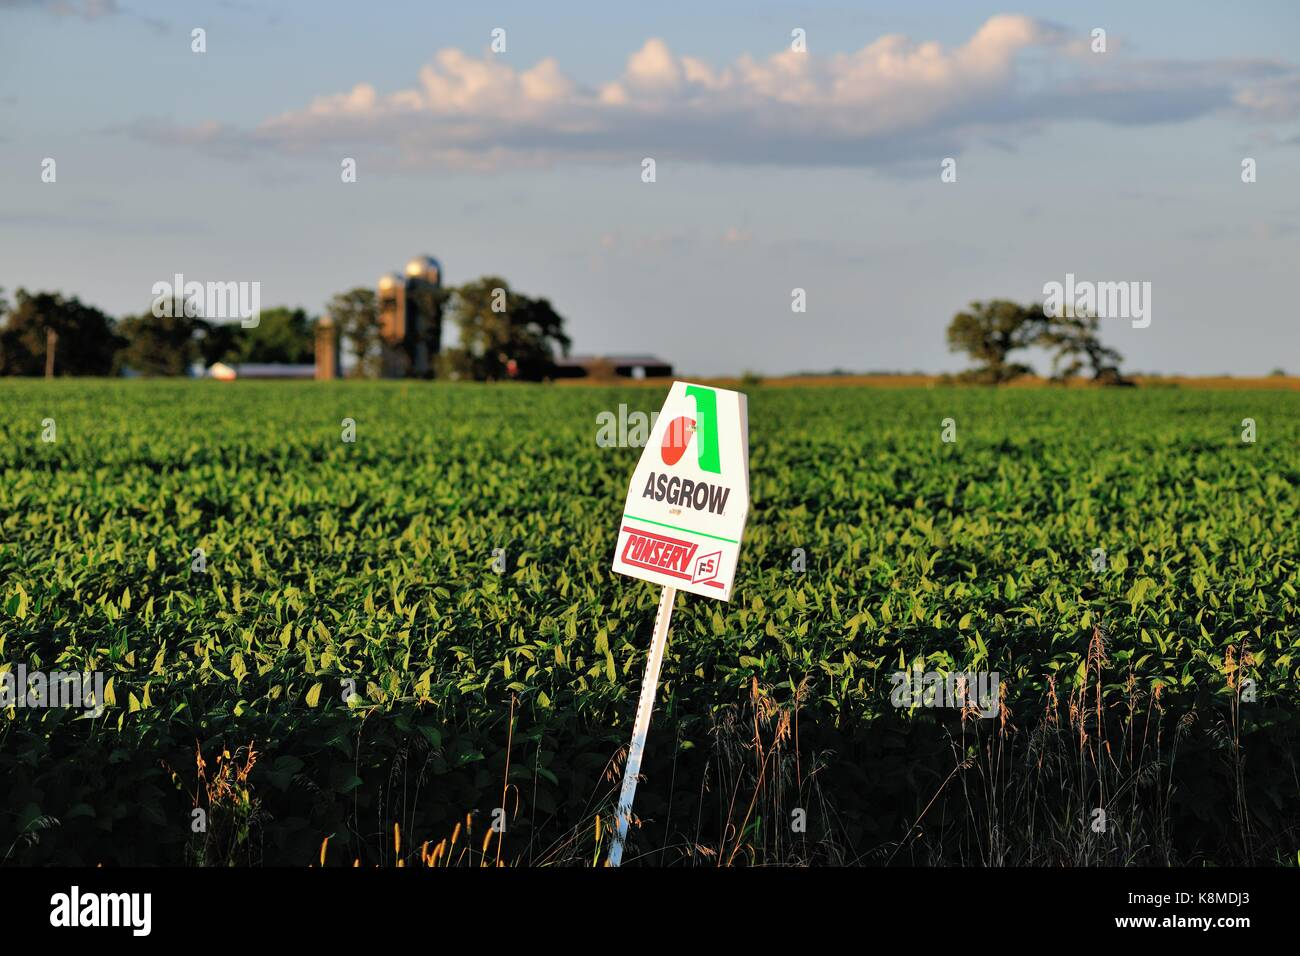 An isolated, lone feed/seed sign along a rural dirt road in Illinois farm country, near Sandwich, Illinois, USA. - Stock Image